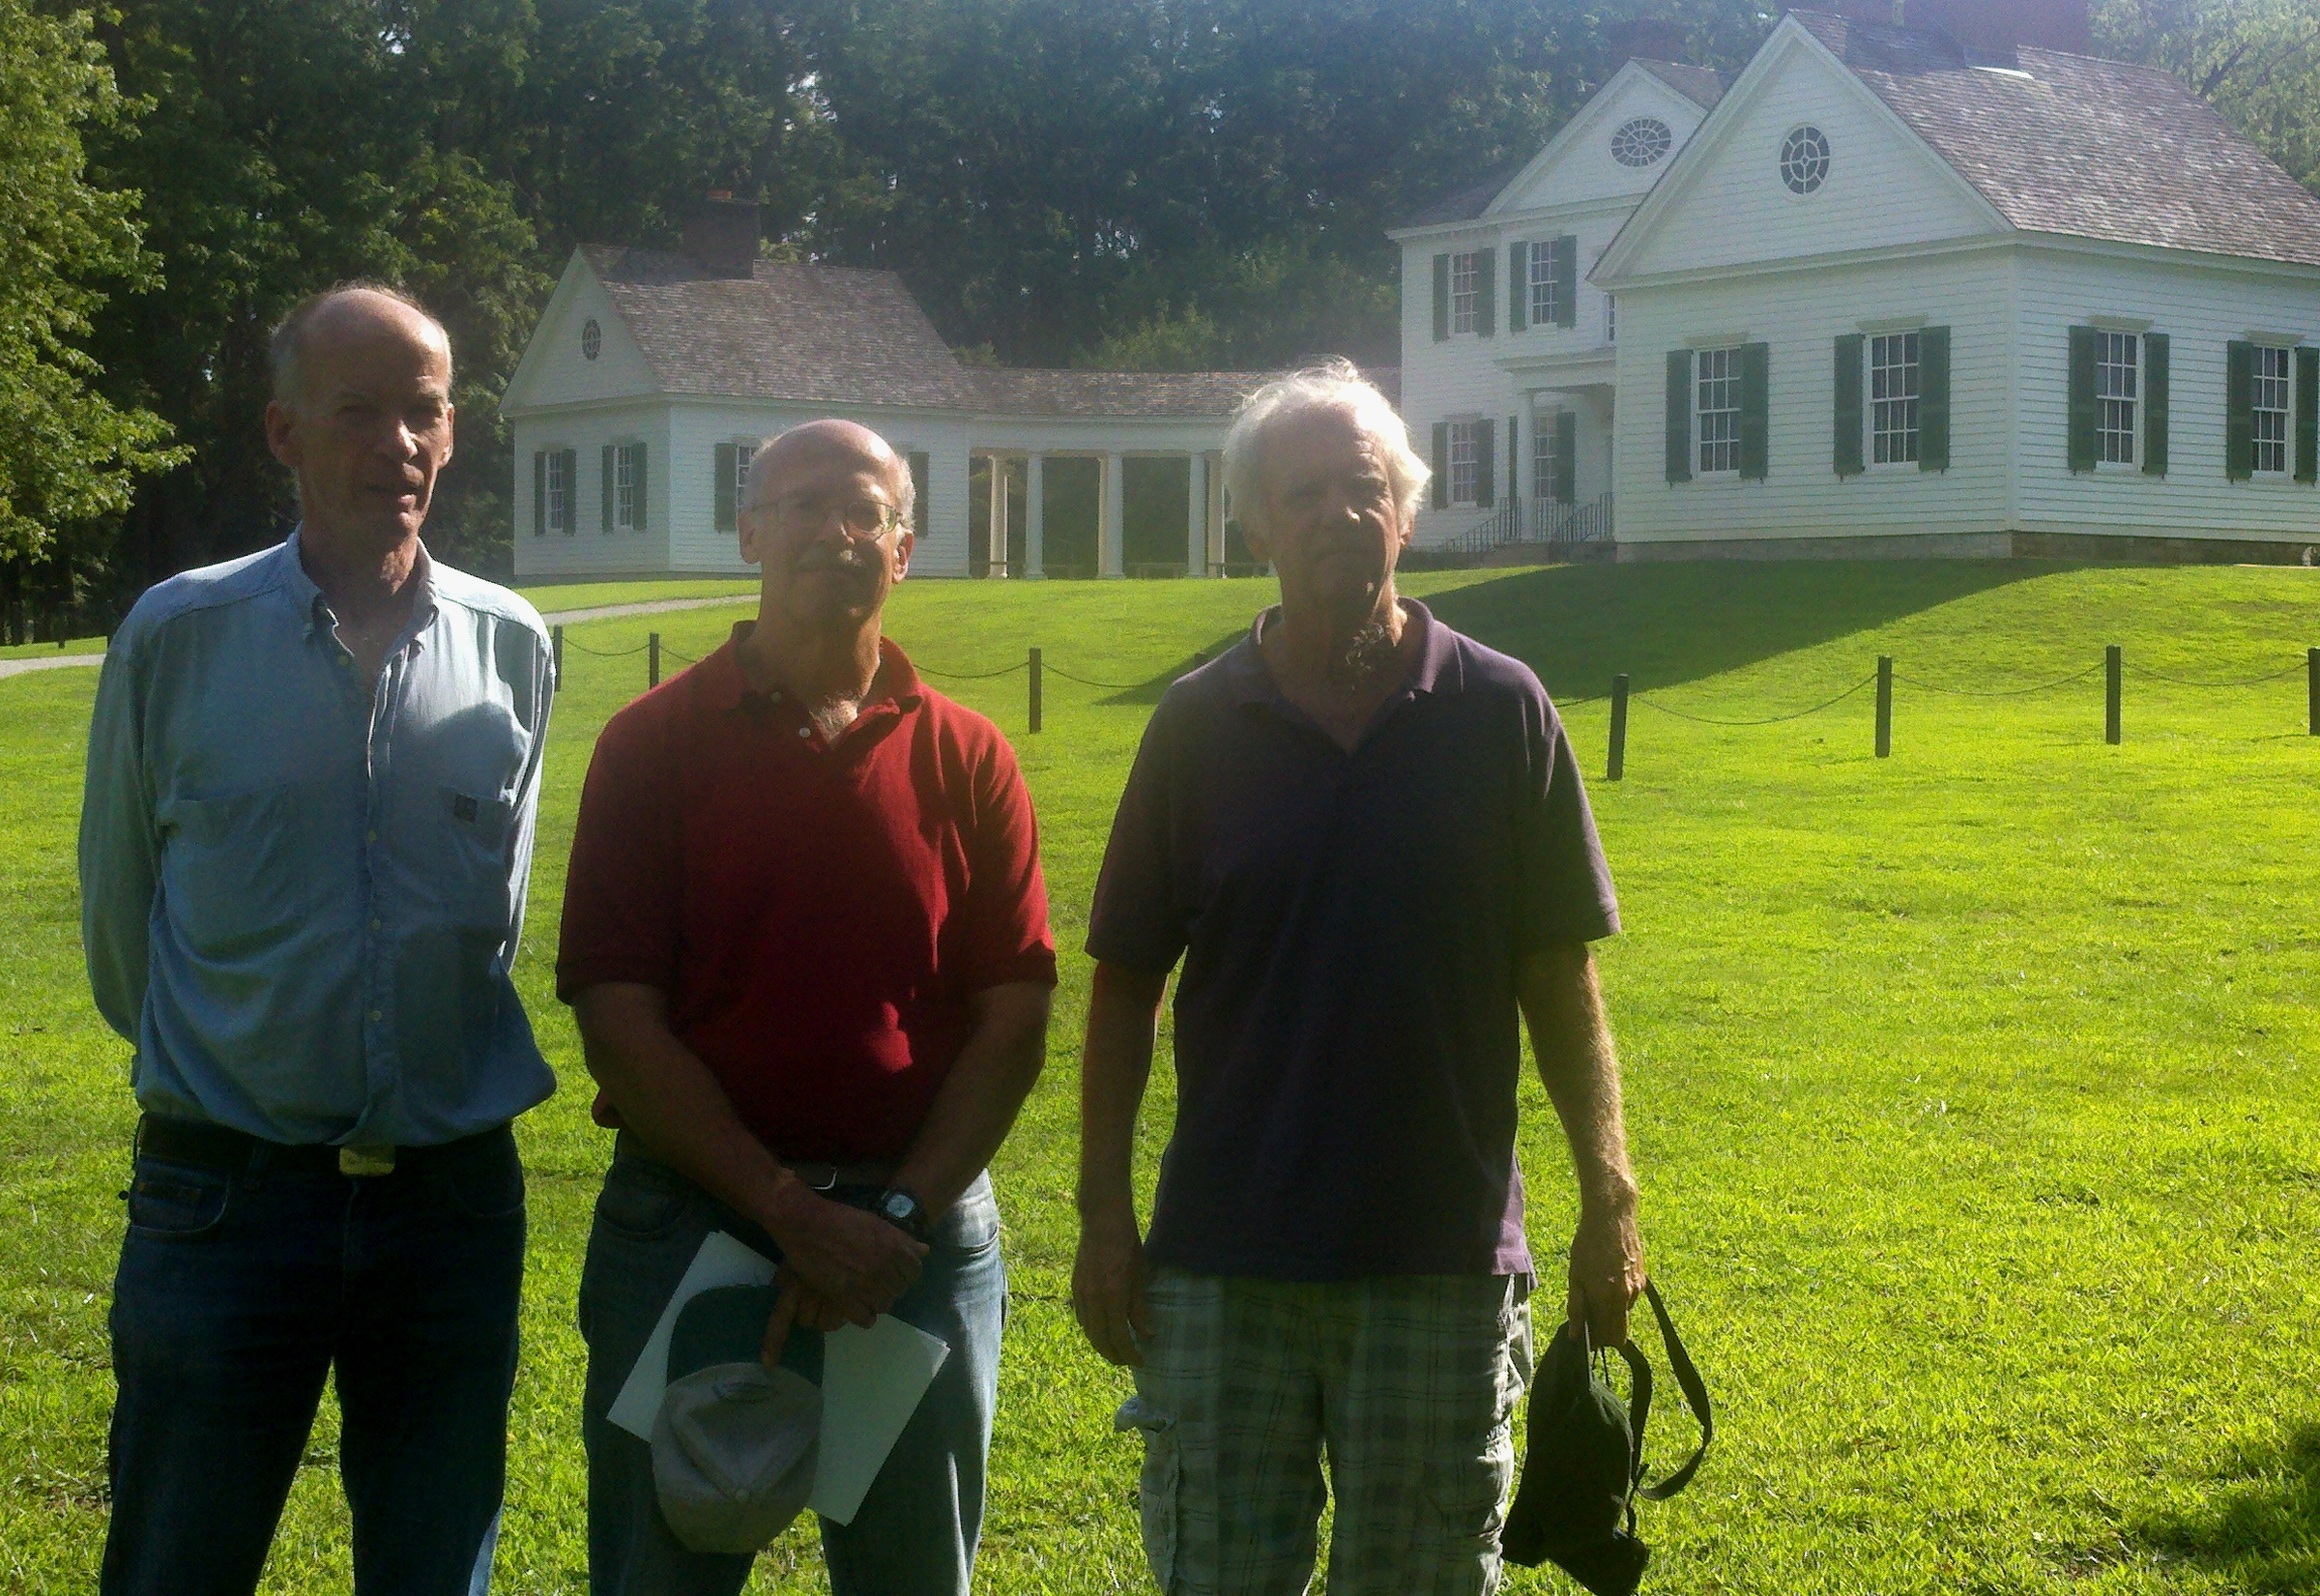 The Science Panel members, while visiting Parkersburg for the press conference on Monday, July 30, also visited the local attraction, Blennerhassett Island, with the restored house pictured here.